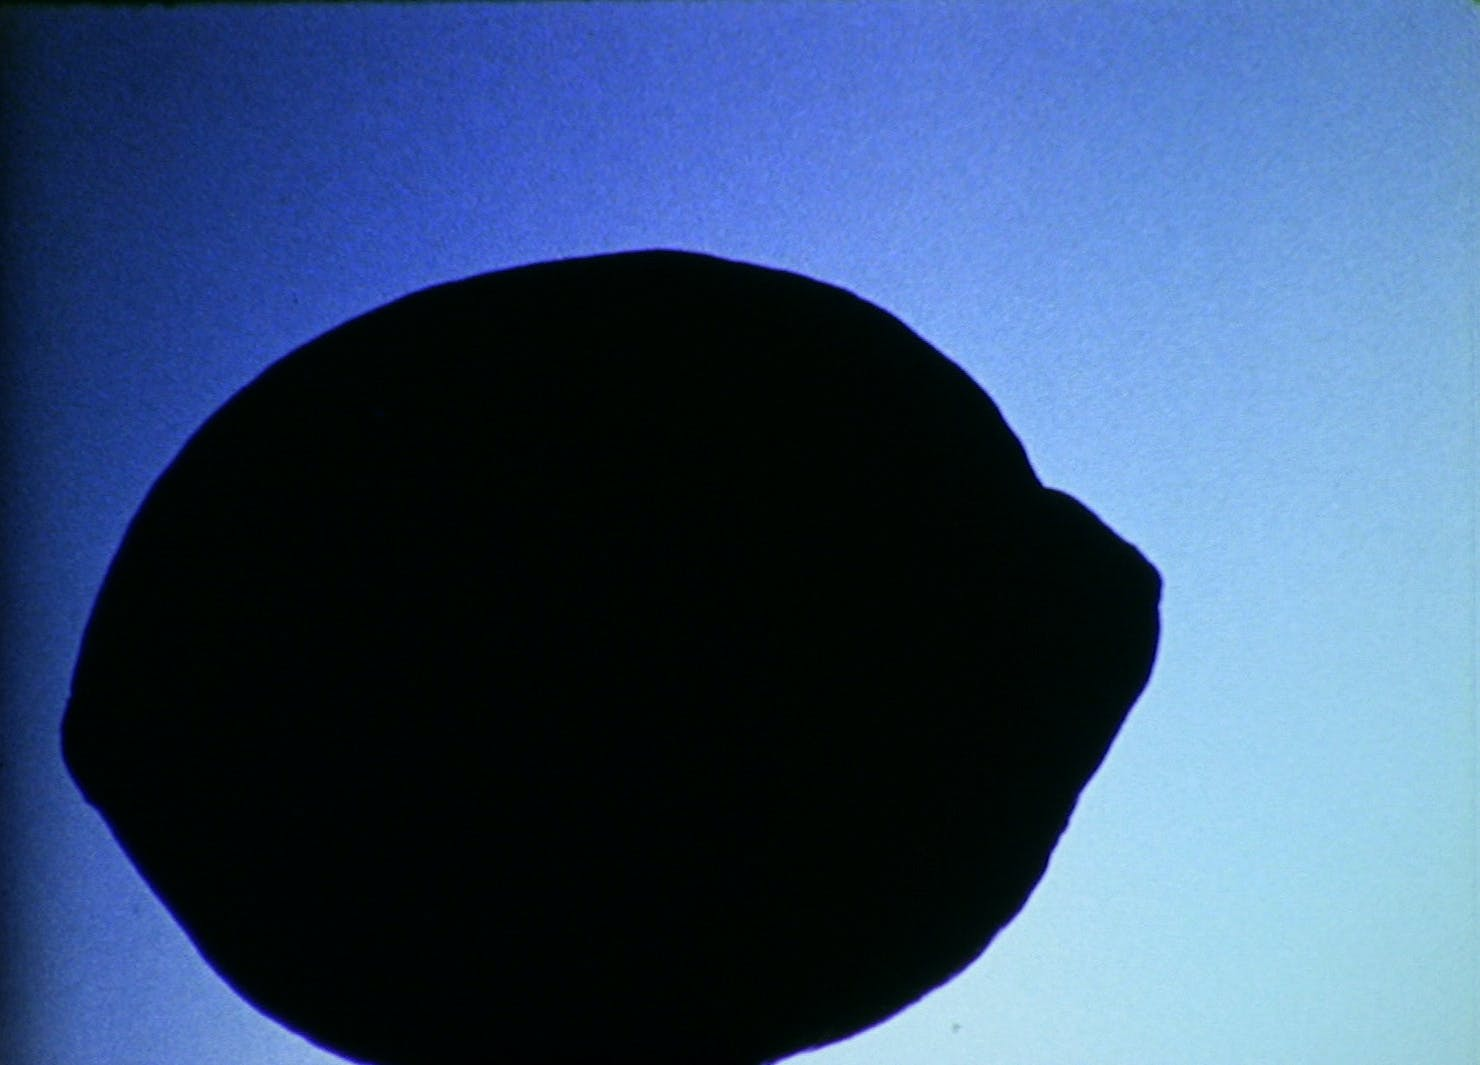 Hollis Frampton, Lemon, 1969 (film still)